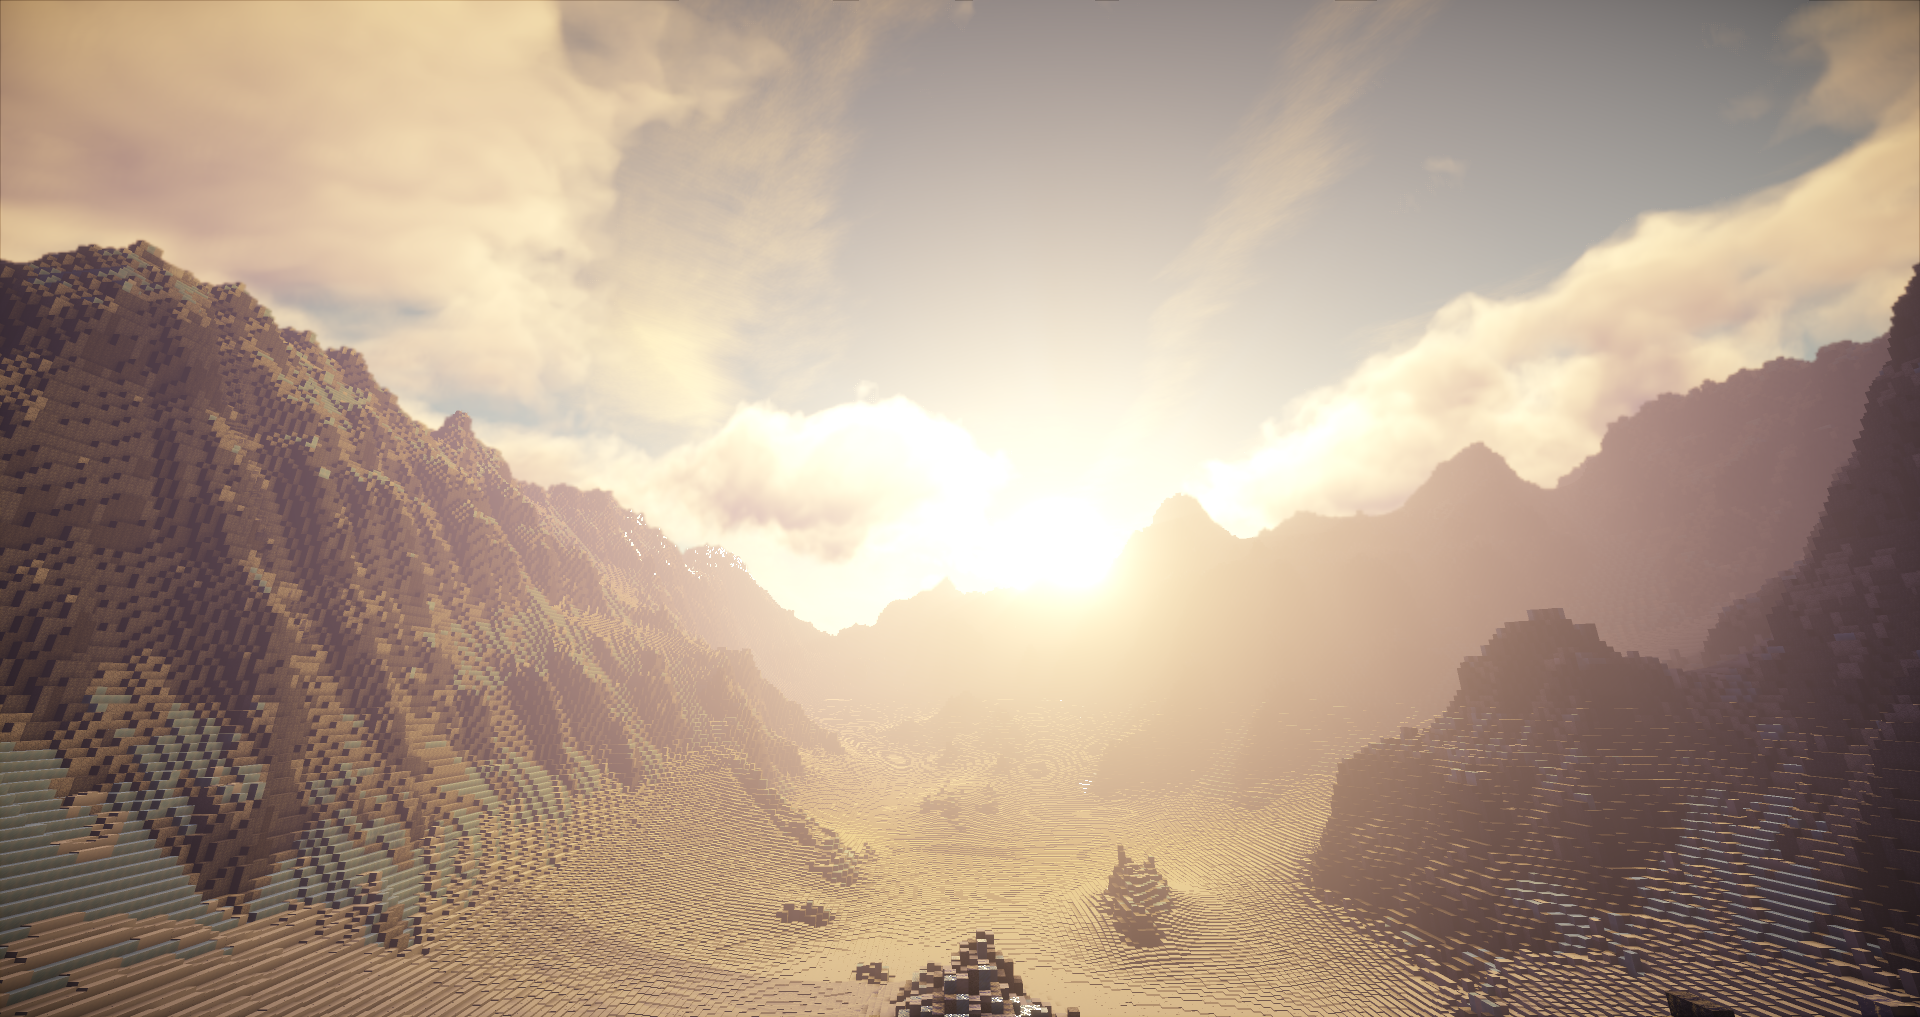 130712e6e3 [1.7.10] Continuum Shaders Mod Download